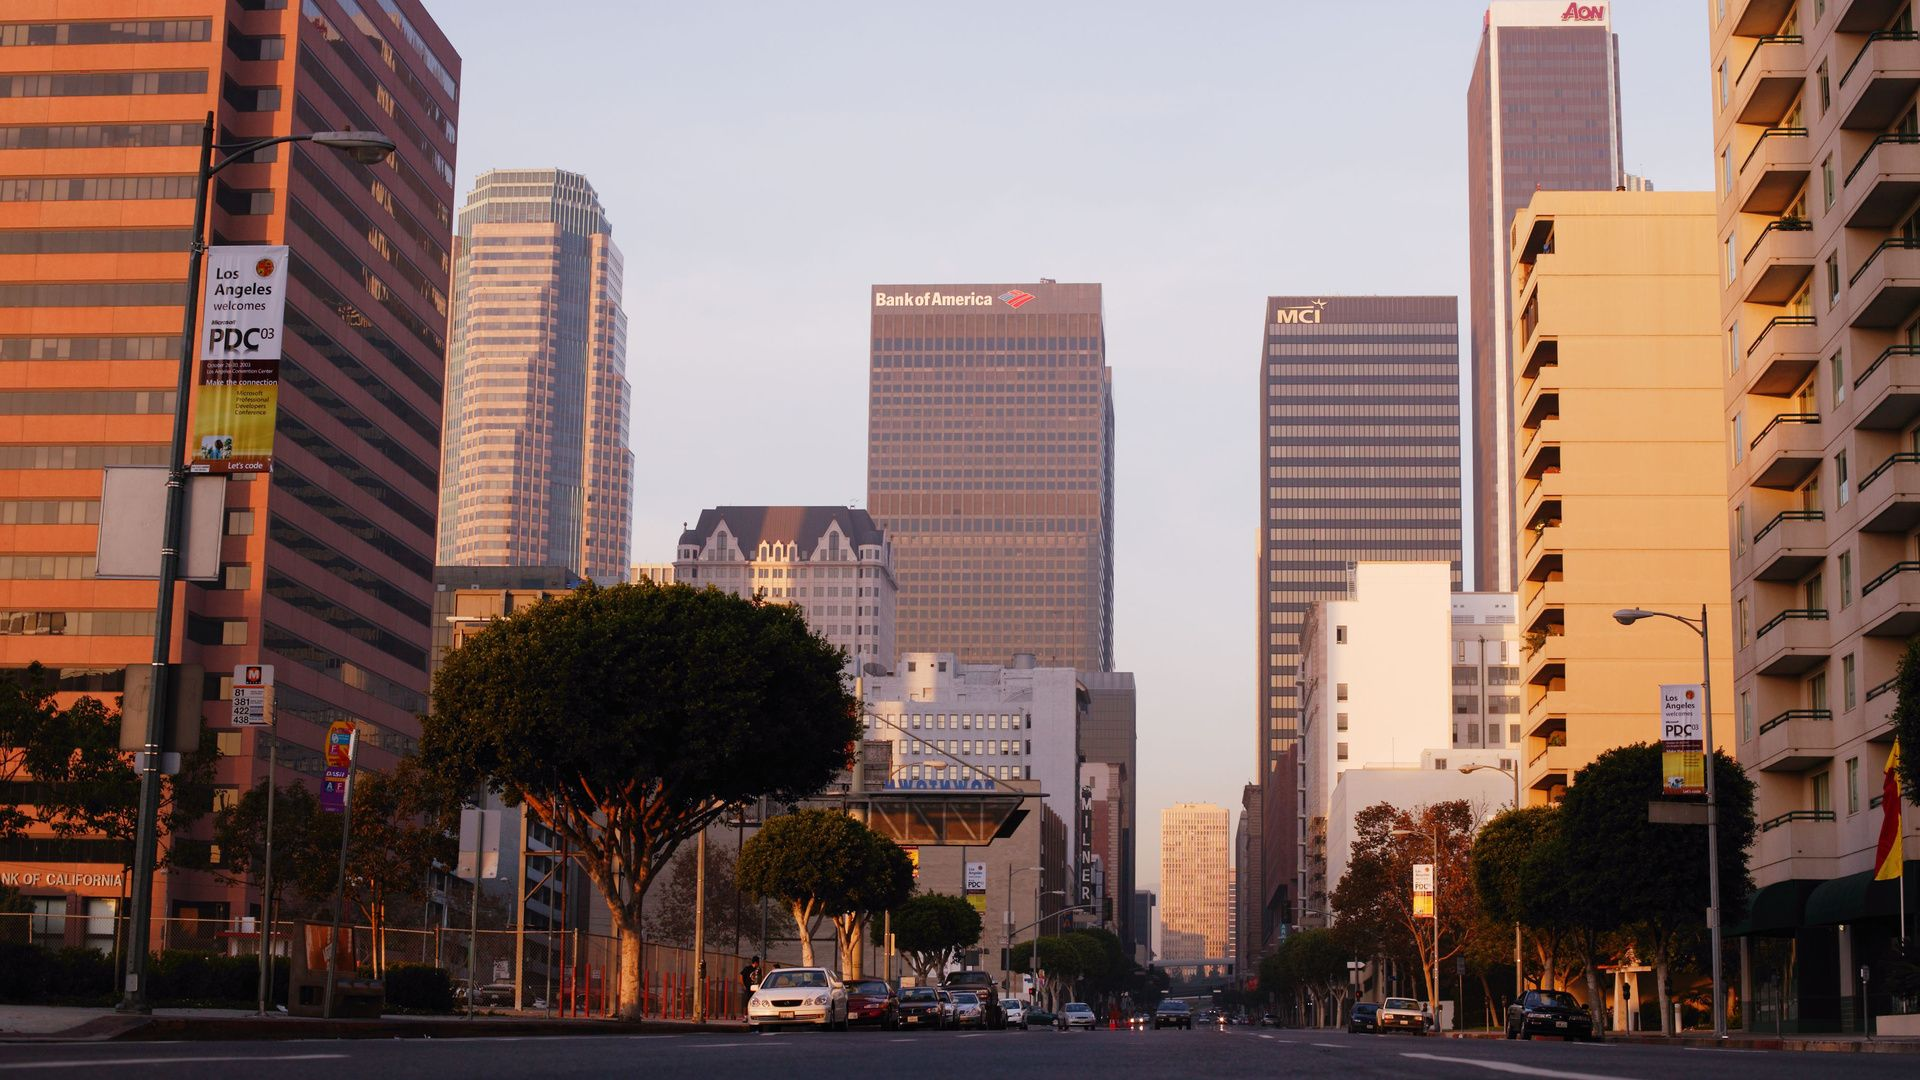 Los Angeles wallpaper download